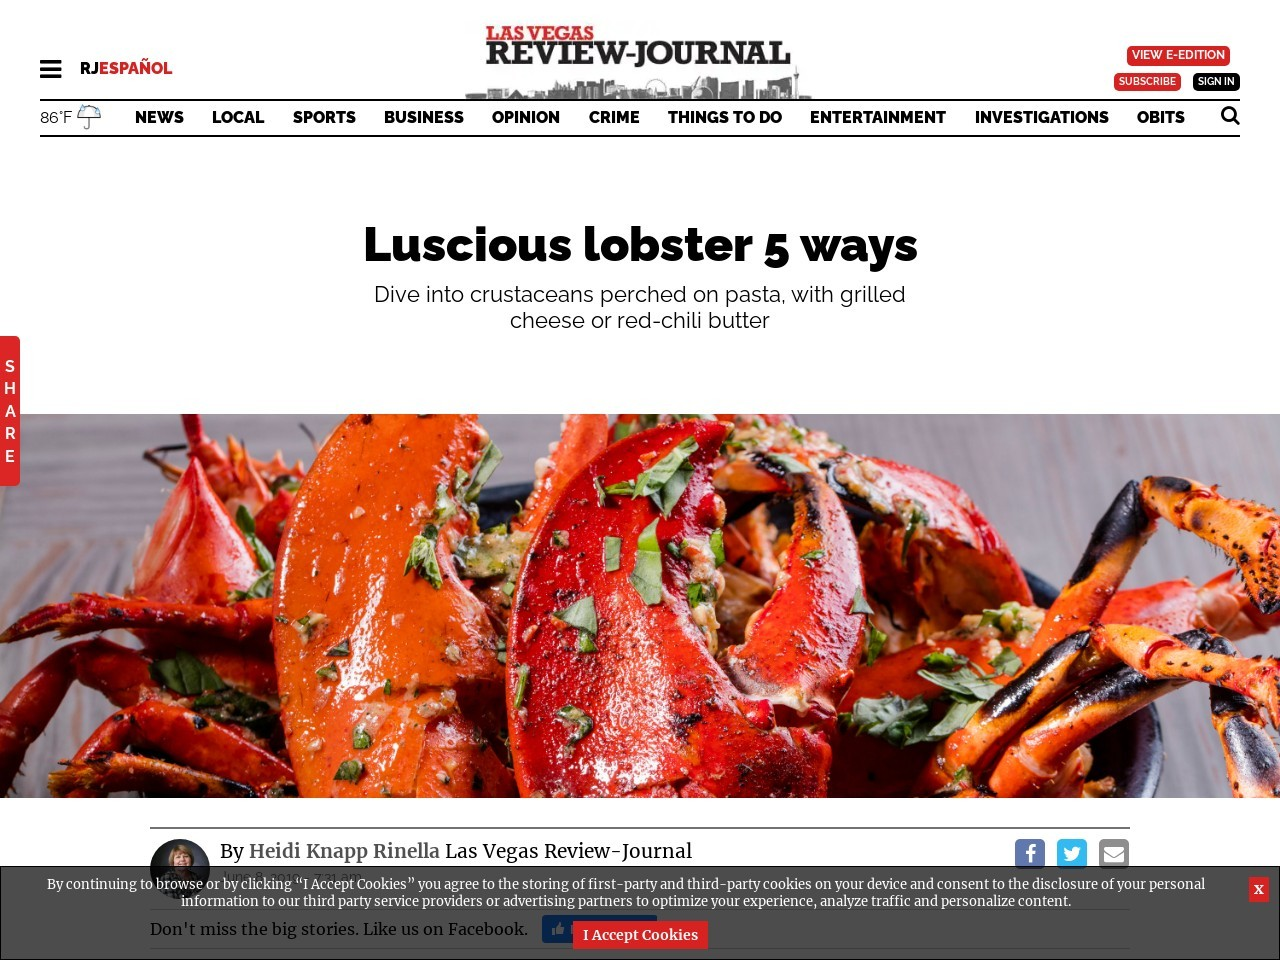 Local restaurants give lobster dishes some innovative twists